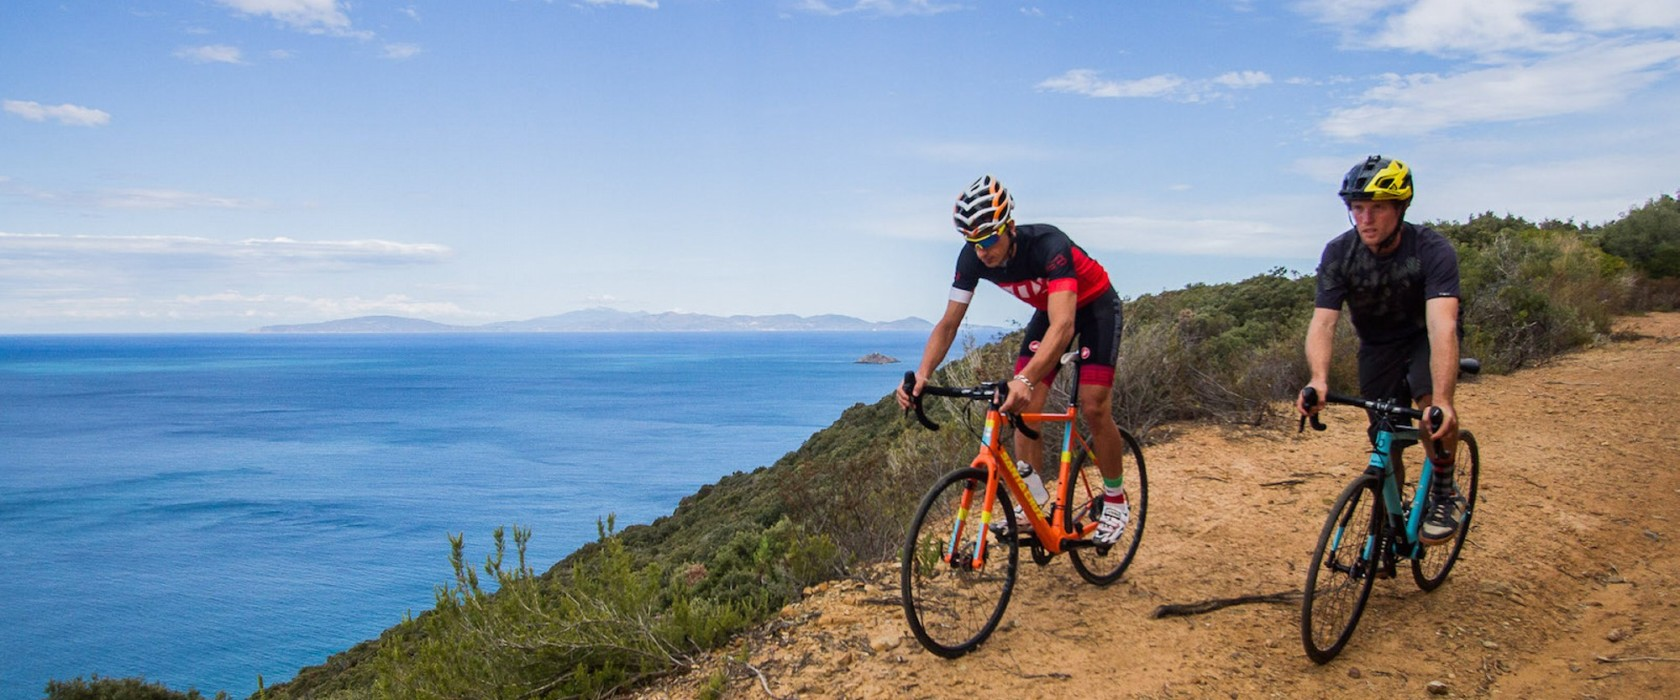 Secluded gravel roads and hidden bays along the way. The Gravel Road Challenge course covers some of the best of Punta Ala's nearby terrain.